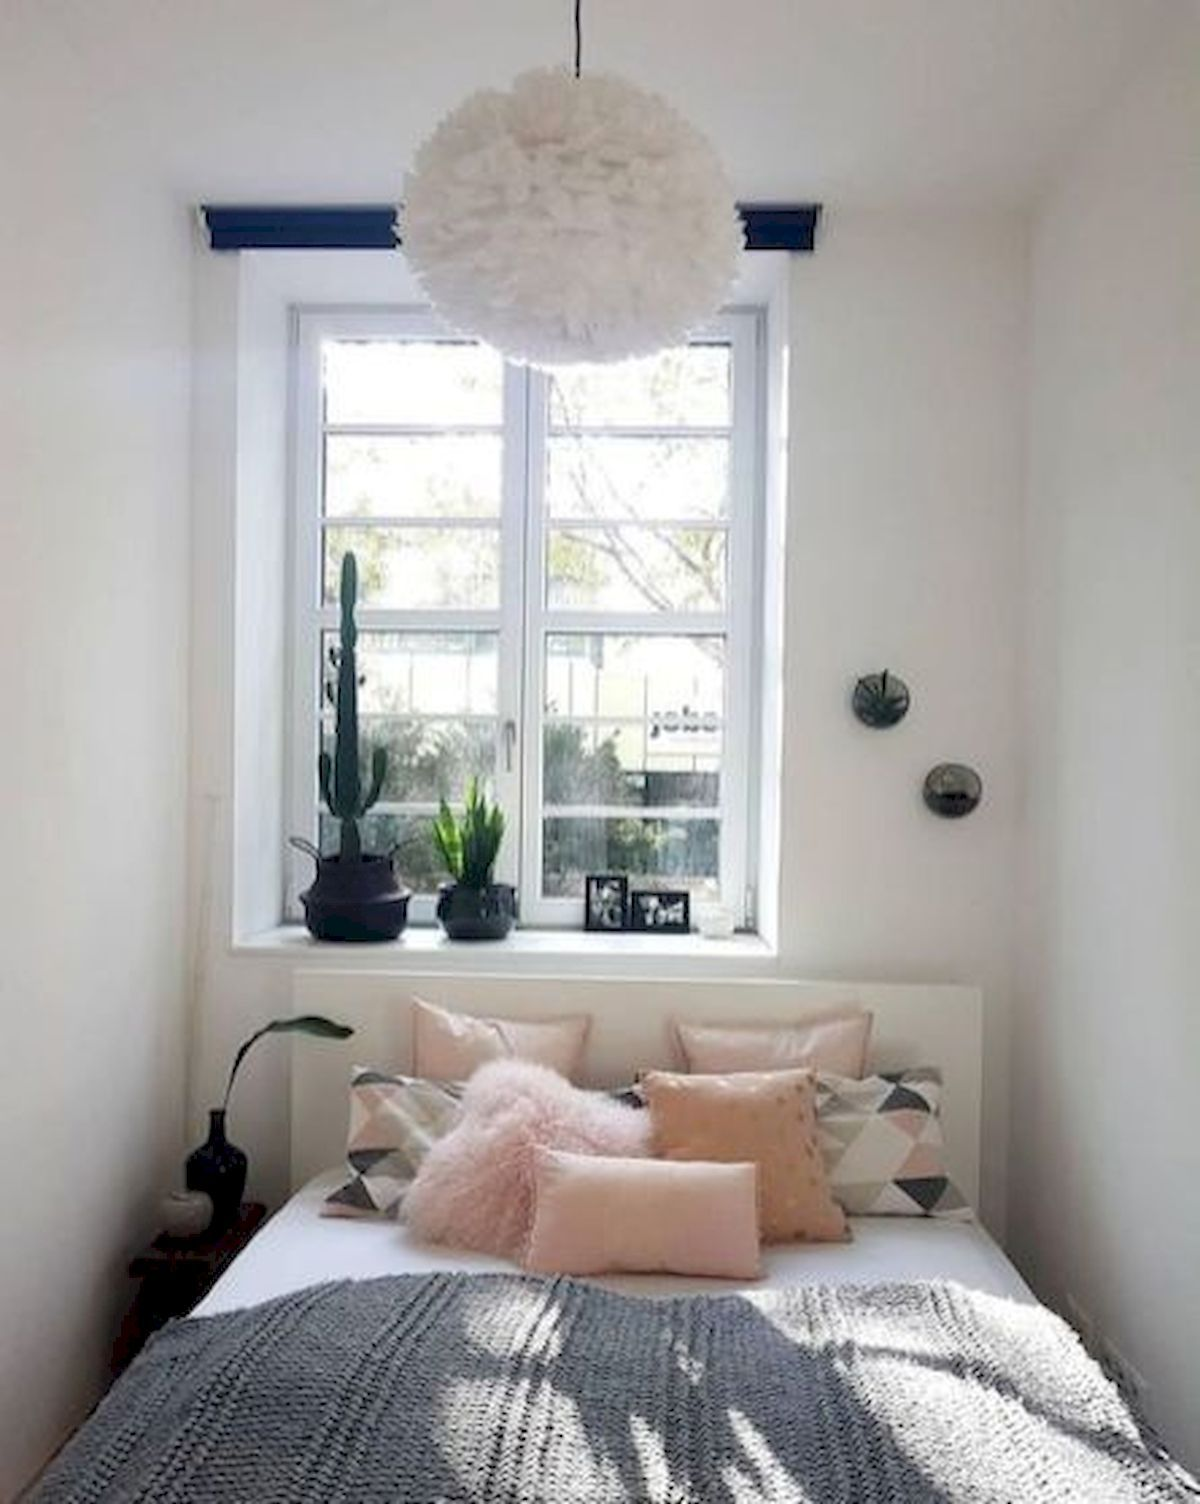 33 Ideas For Small Apartment Bedroom 33decor Apartment Bedroom Decor Small Room Design Small Apartment Bedrooms Small apartment bedroom decor